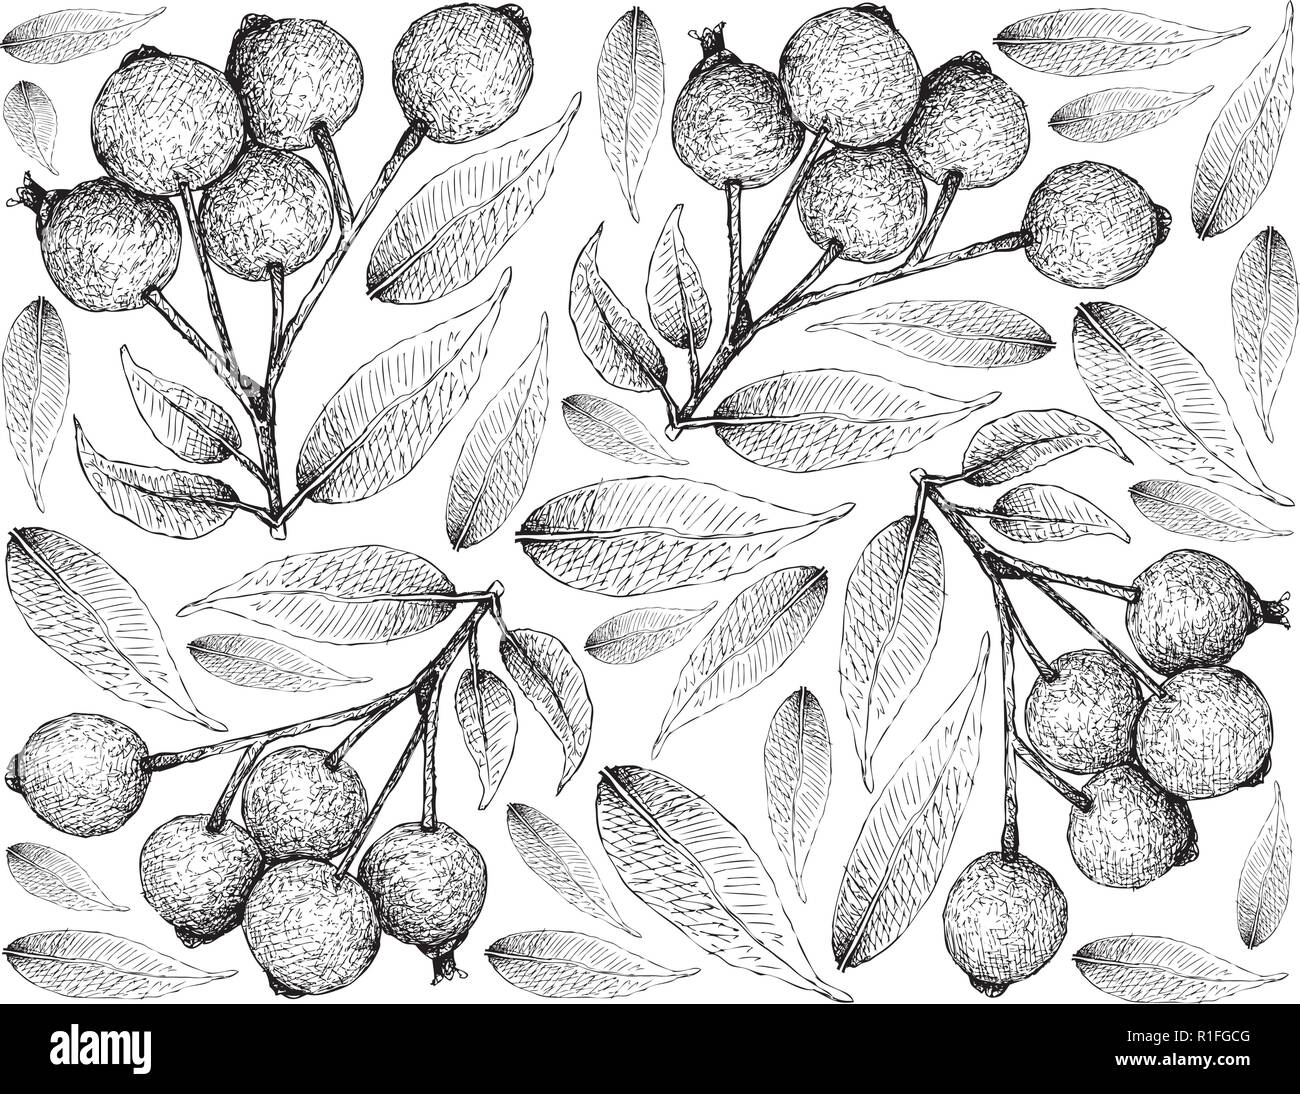 Berry Fruit, Illustration Wallpaper of Hand Drawn Sketch of Magenta Lilly Pilly,  Magenta Cherry or Syzygium Paniculatum Fruits Isolated on White Back - Stock Vector